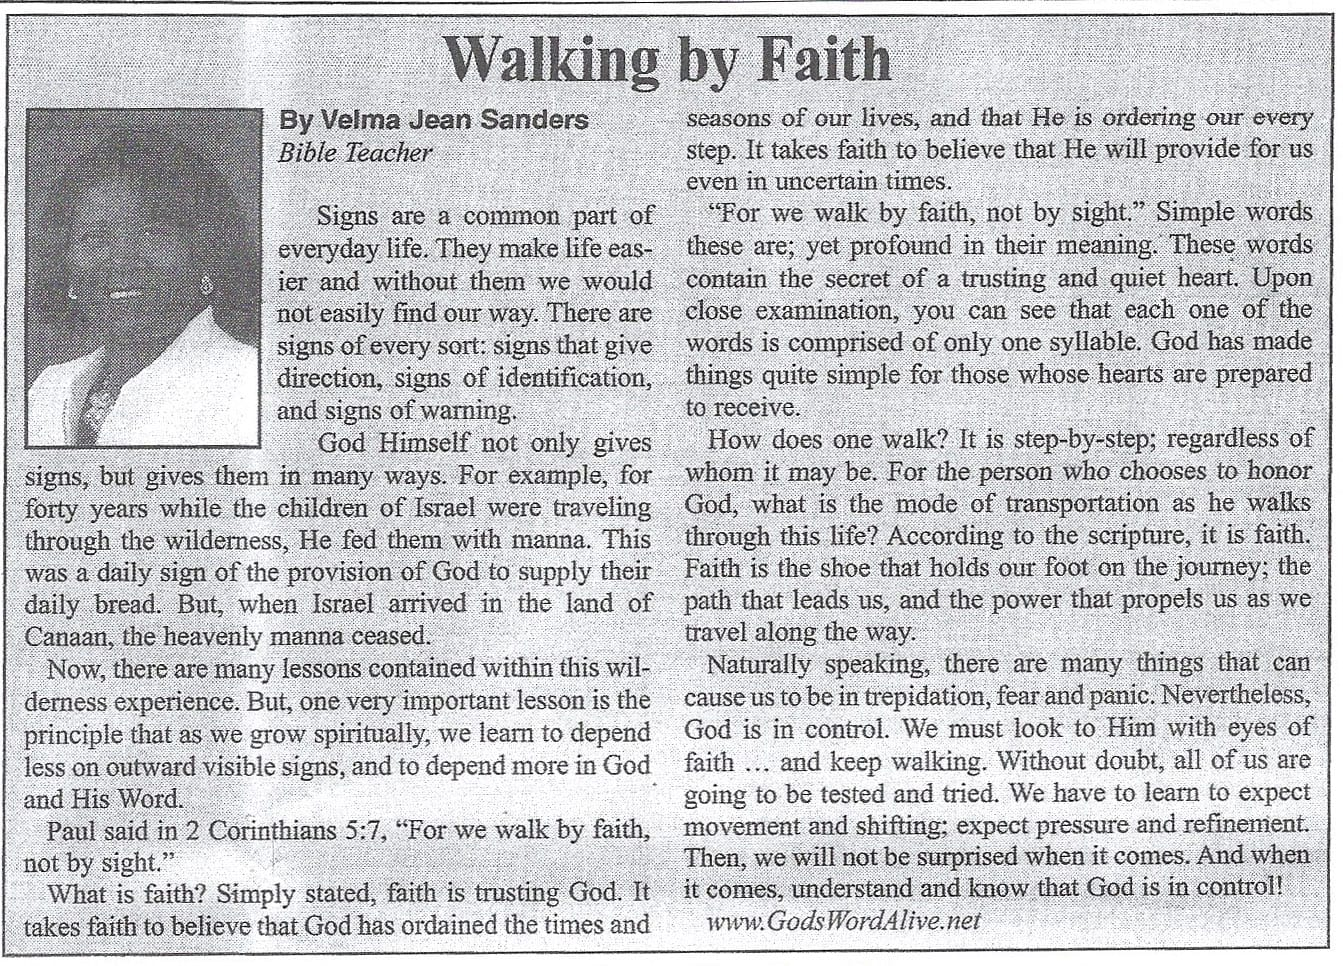 walking by faith article by Velma Sanders